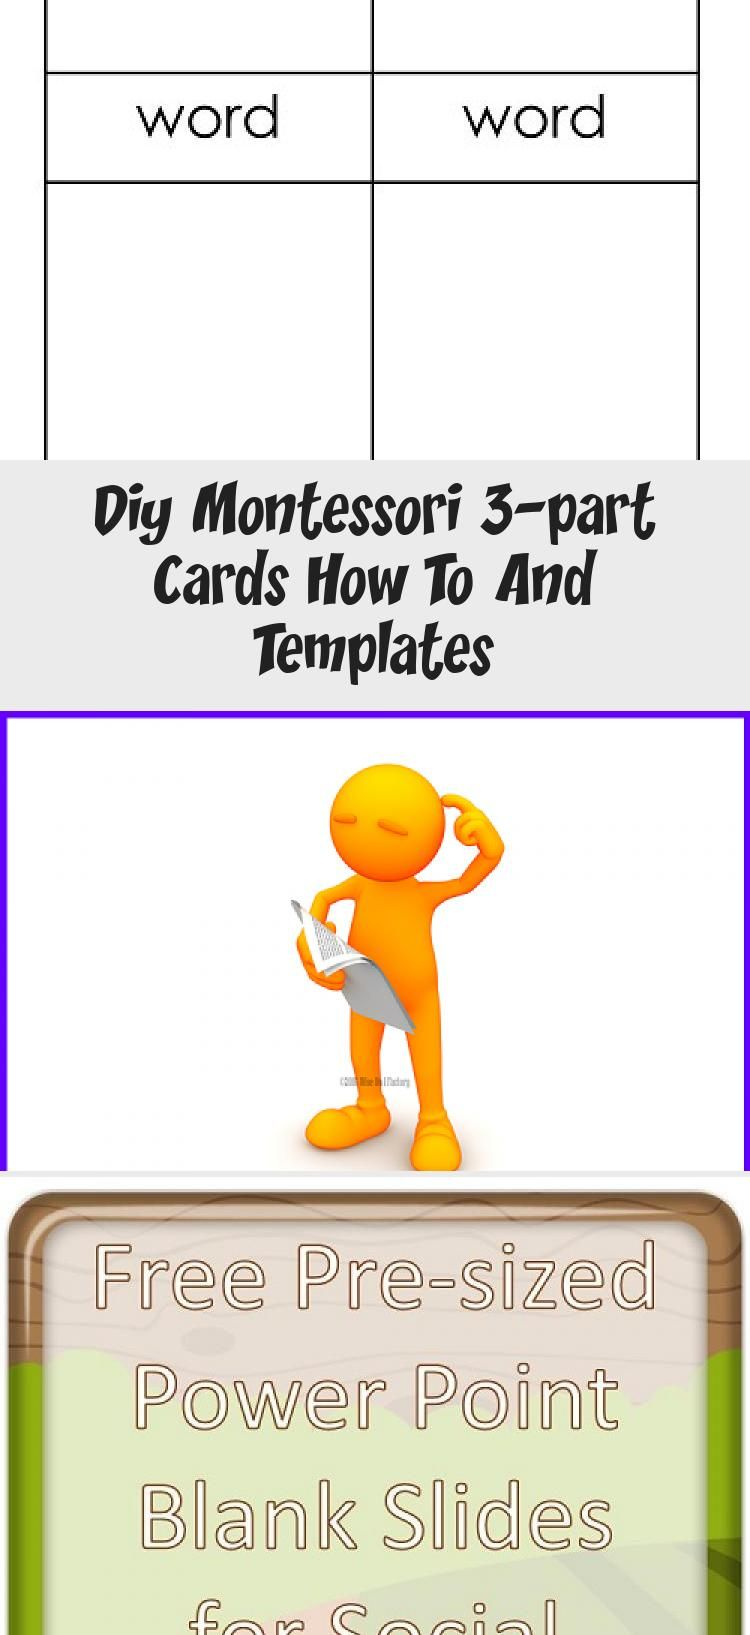 Diy Montessori 3 Part Cards How To And Templates Informational Blog Post And Video With Information About How To Make 3 Part C In 2020 Template Free Templates Cards